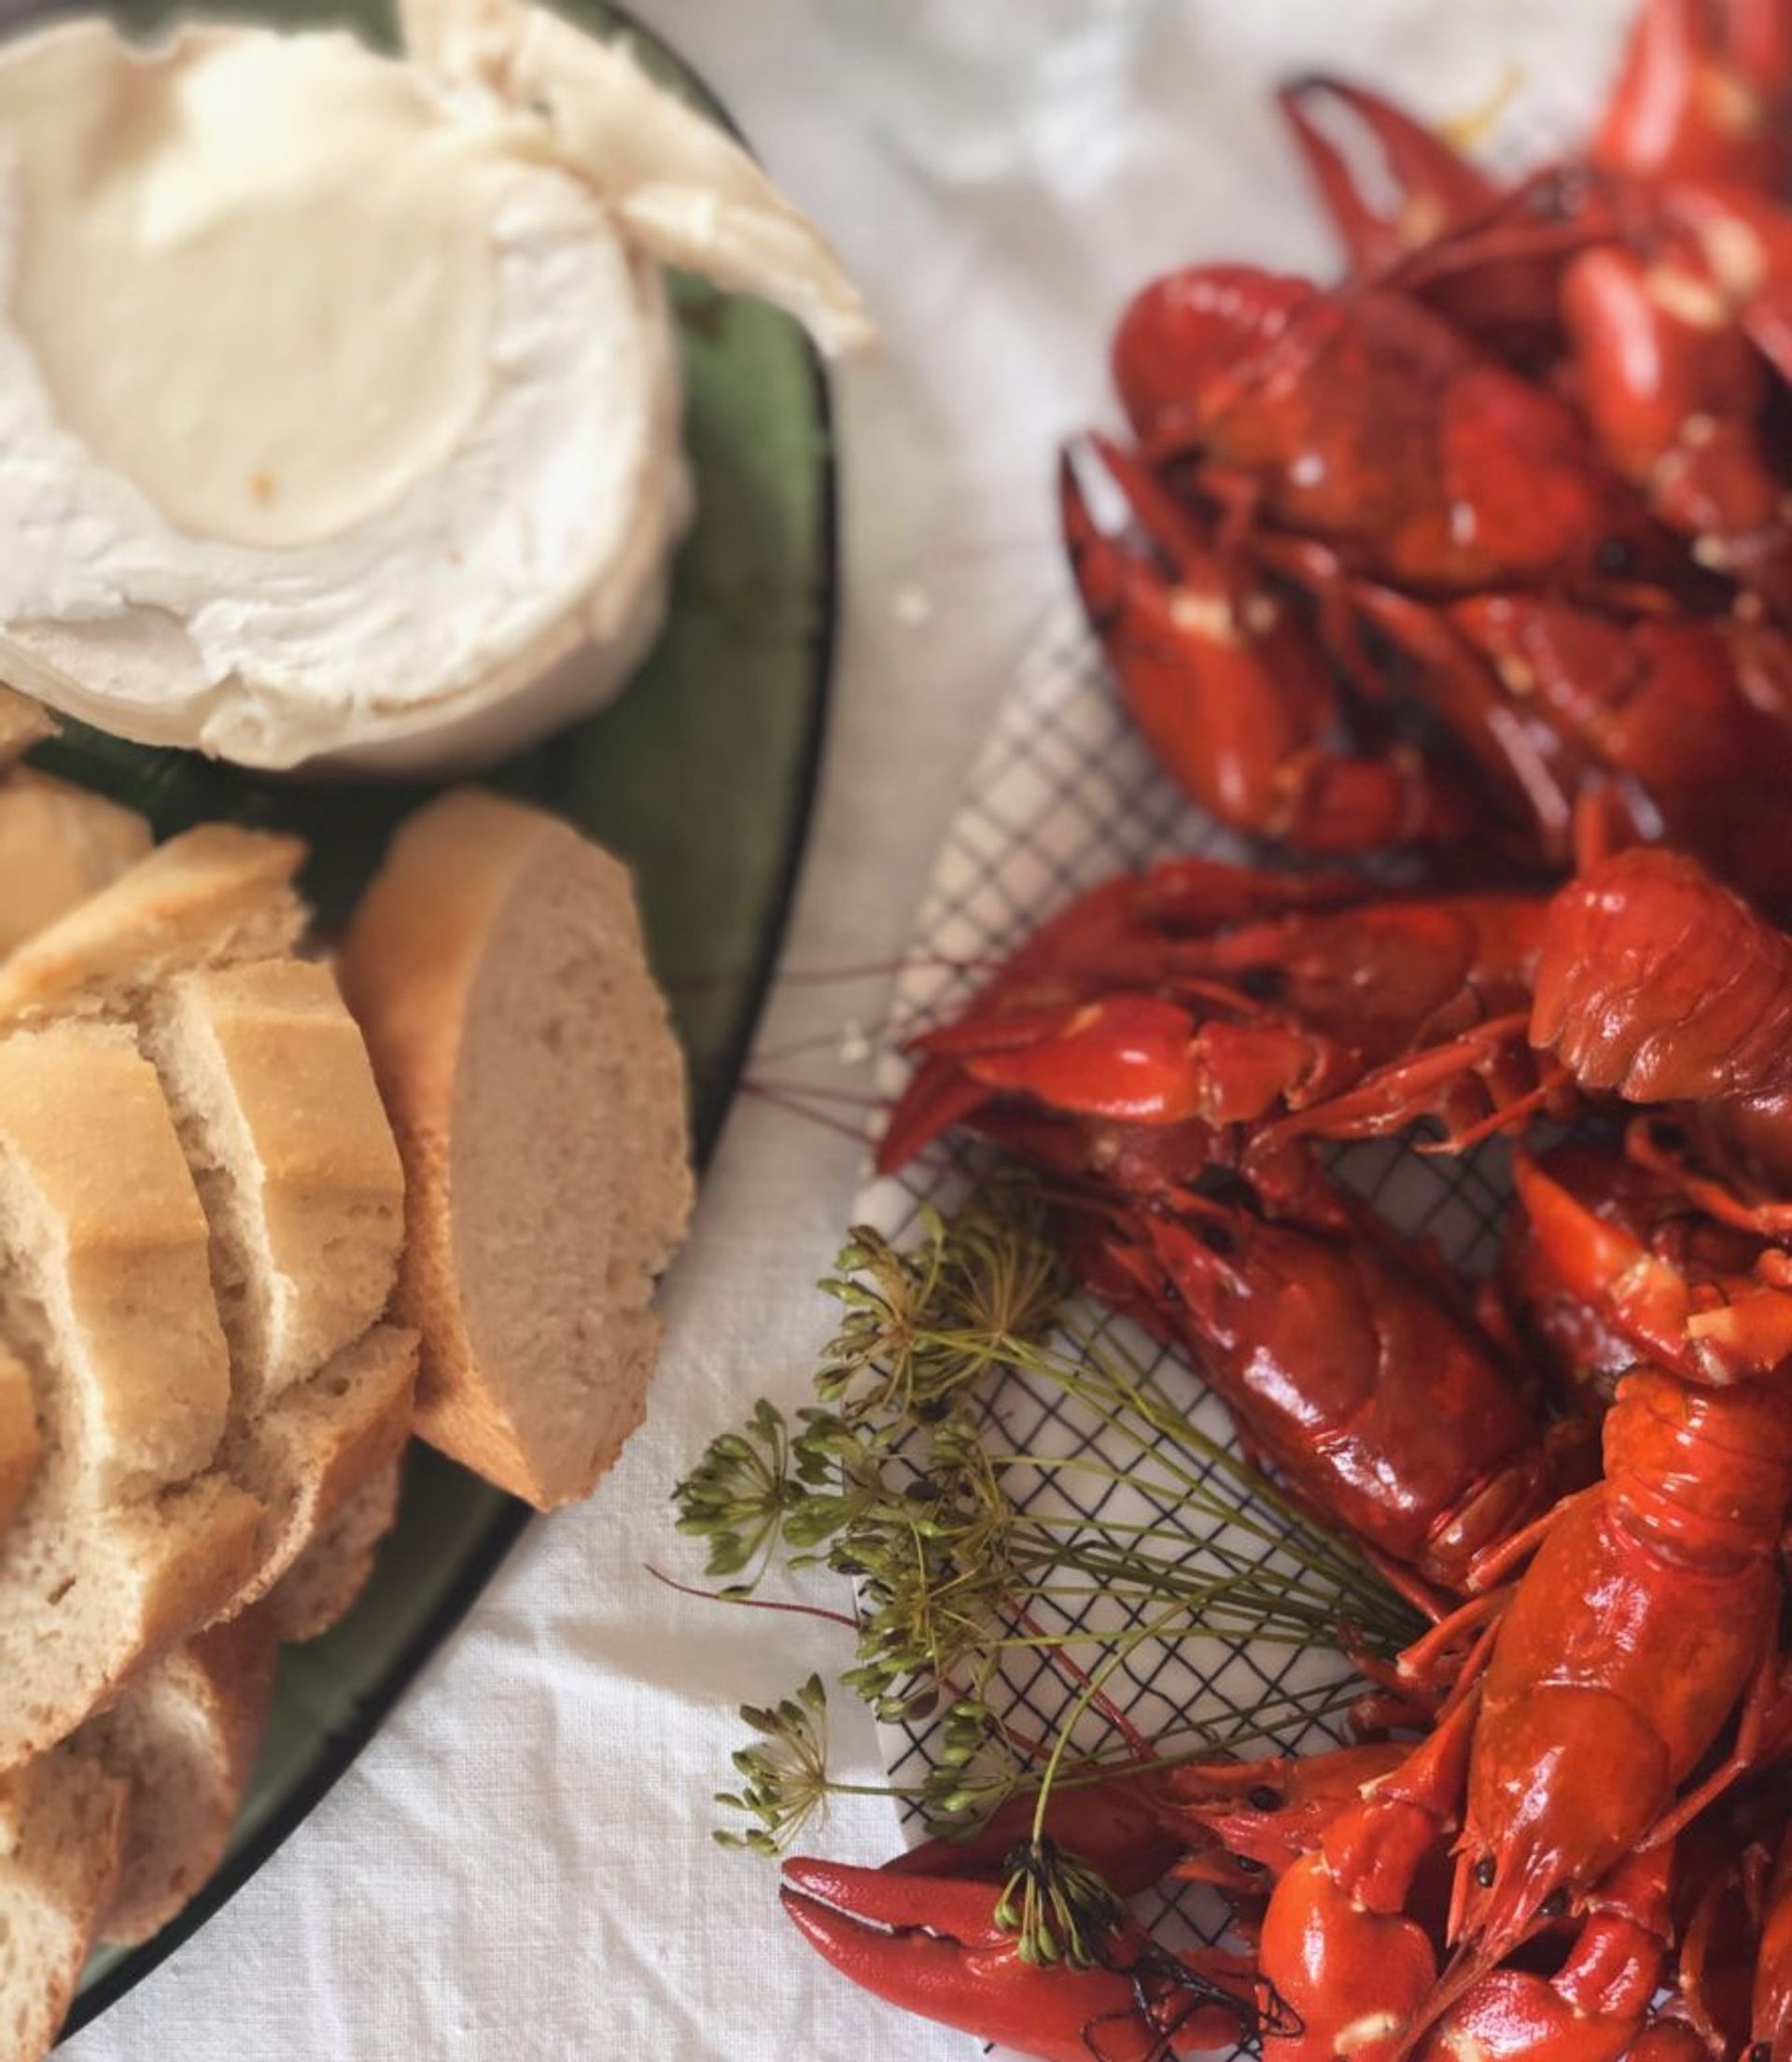 Crayfish, bread and cheese.